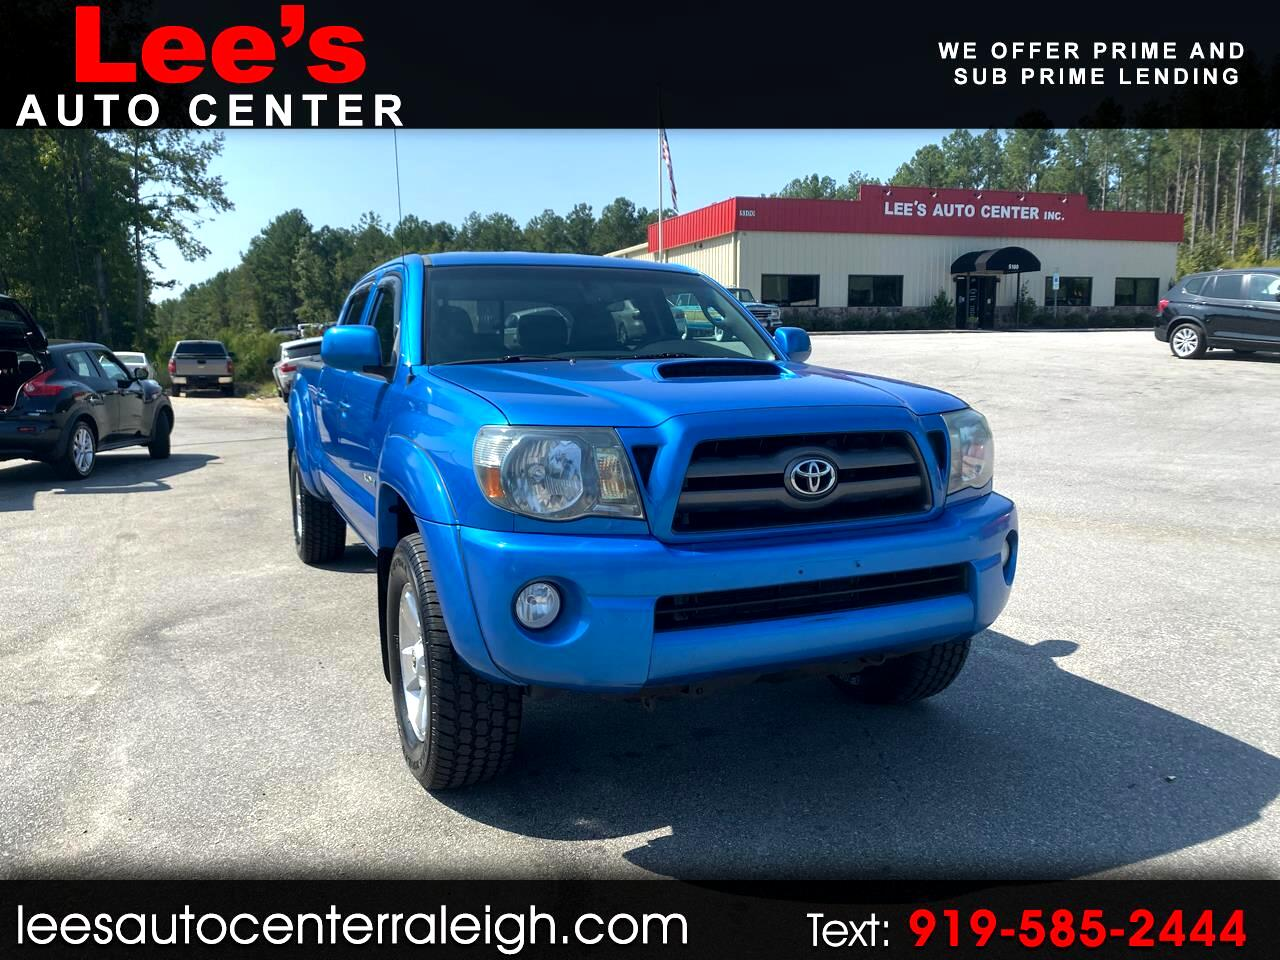 2010 Toyota Tacoma 4WD DOUBLE LB V6 AT, CARFAX 1 OWNER